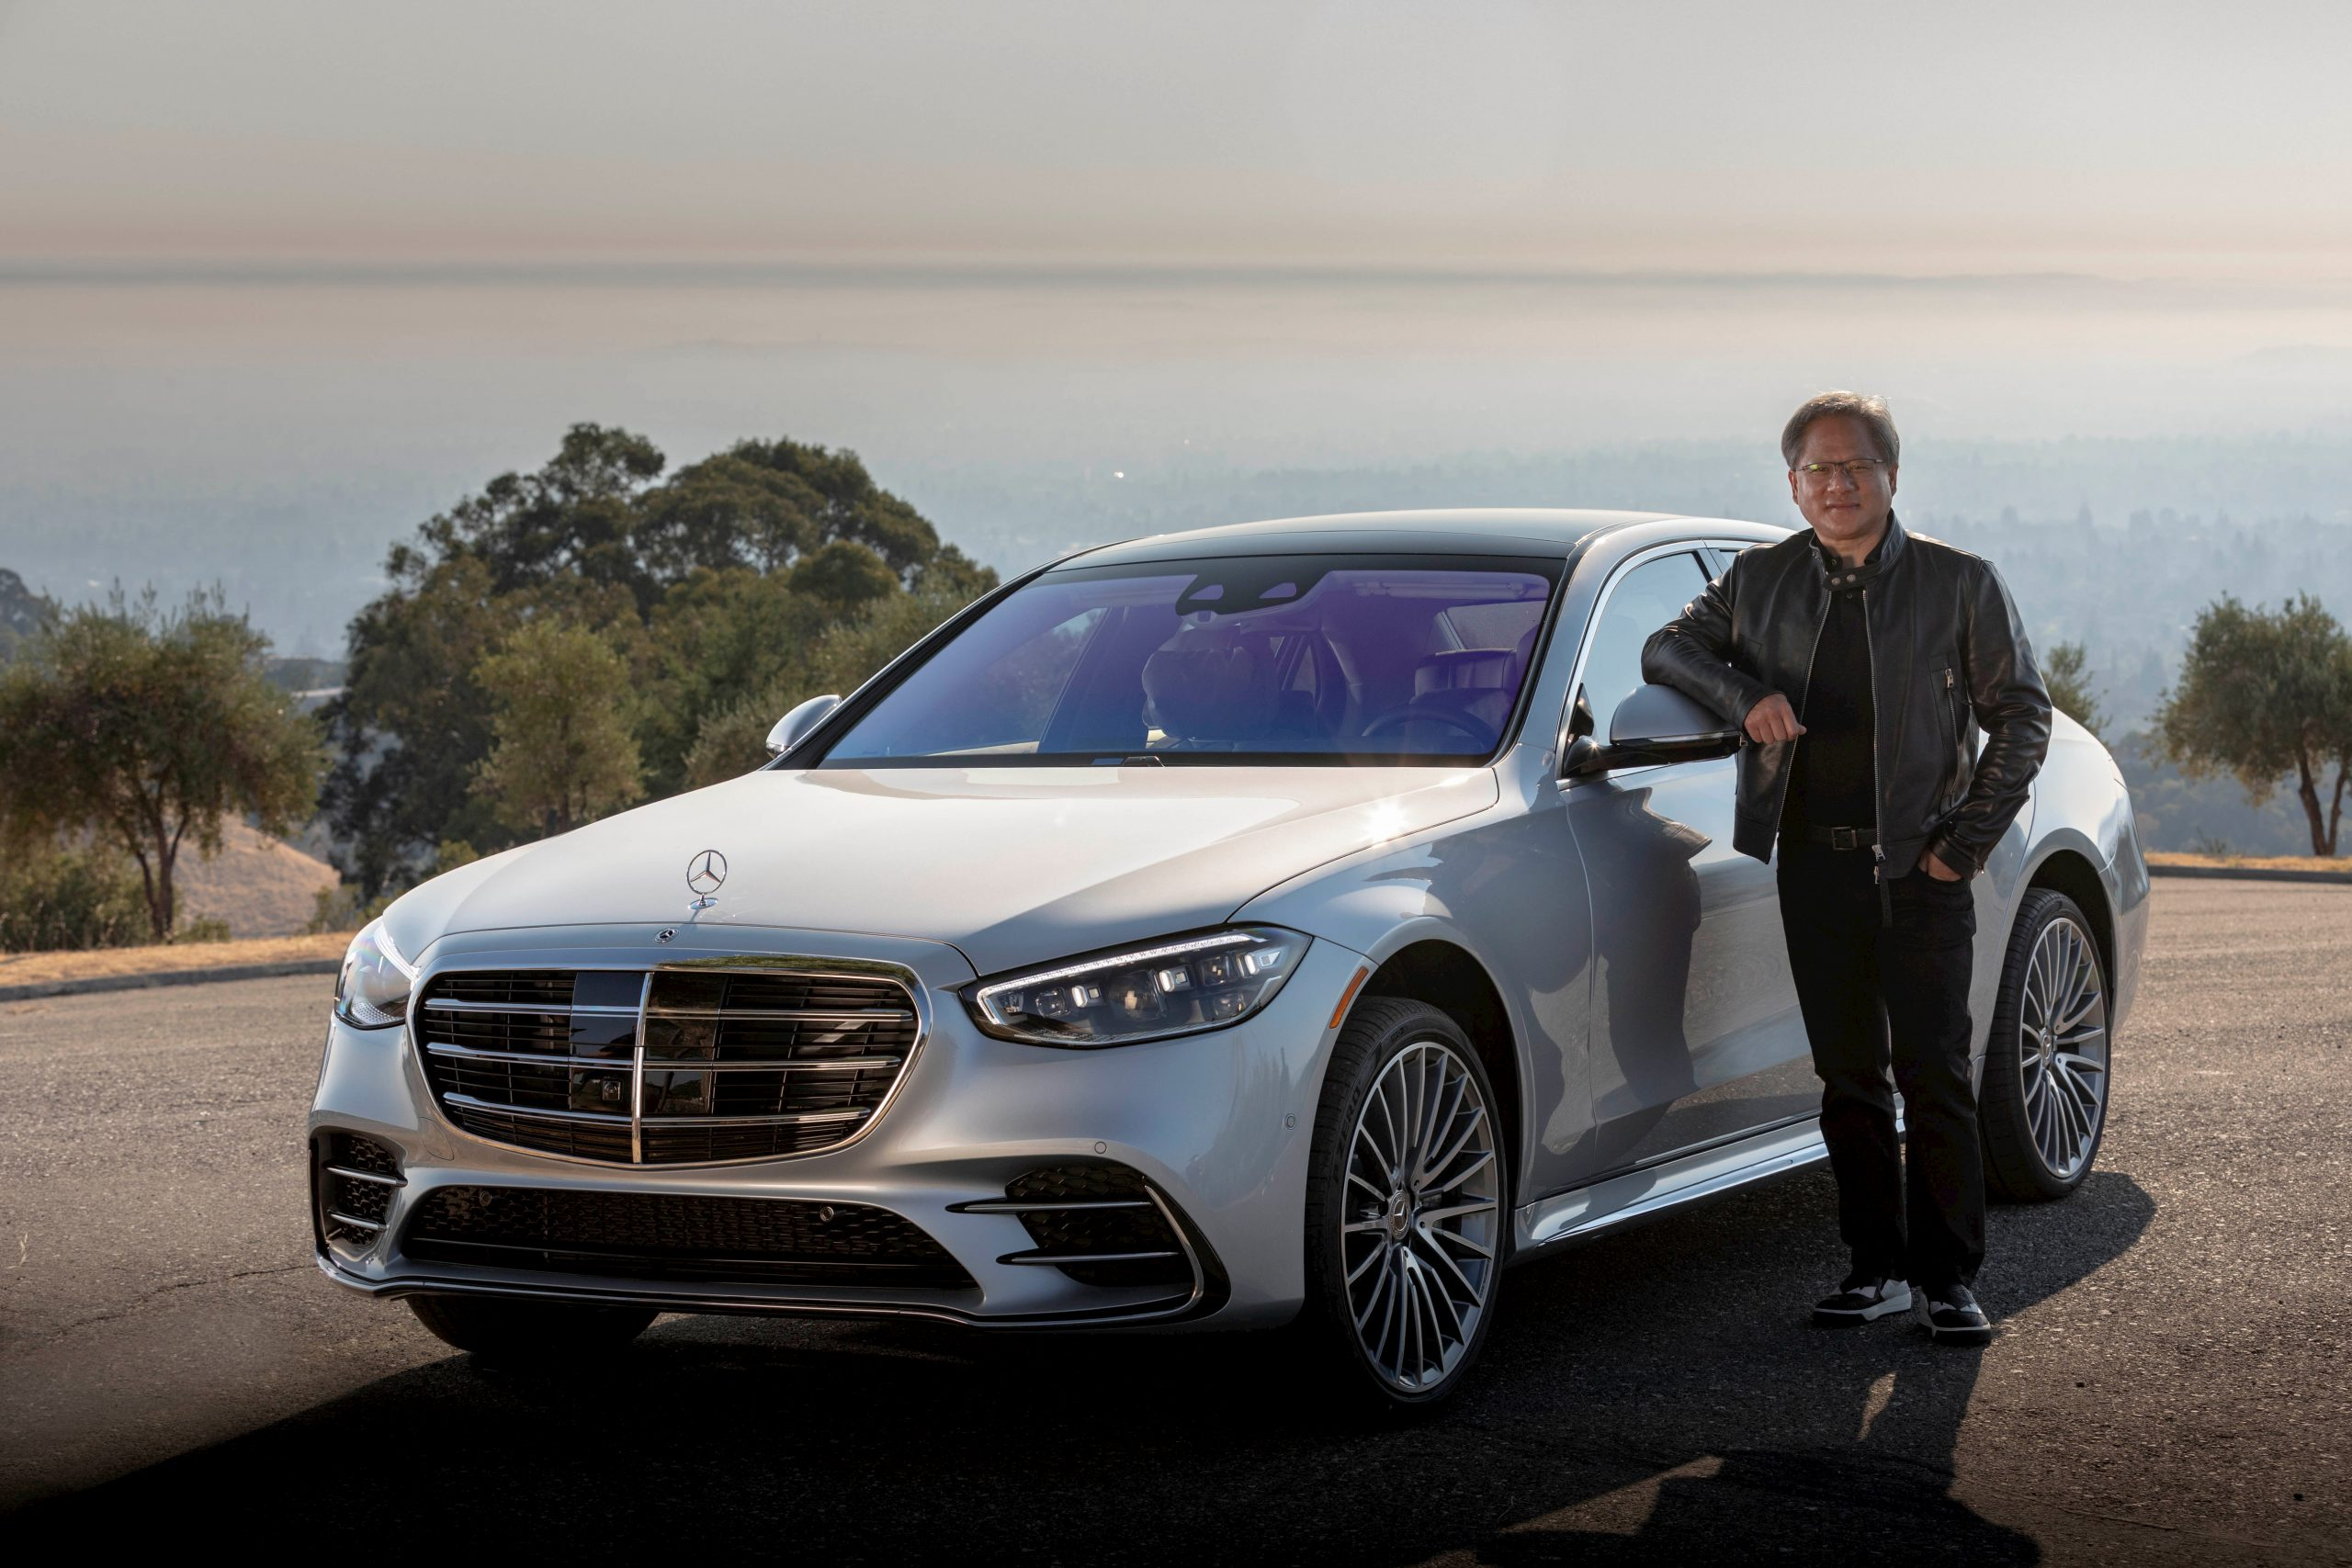 Mercedes-Benz-S_class-Jensen-Huang-Founder-and-CEO-of-NVIDIA